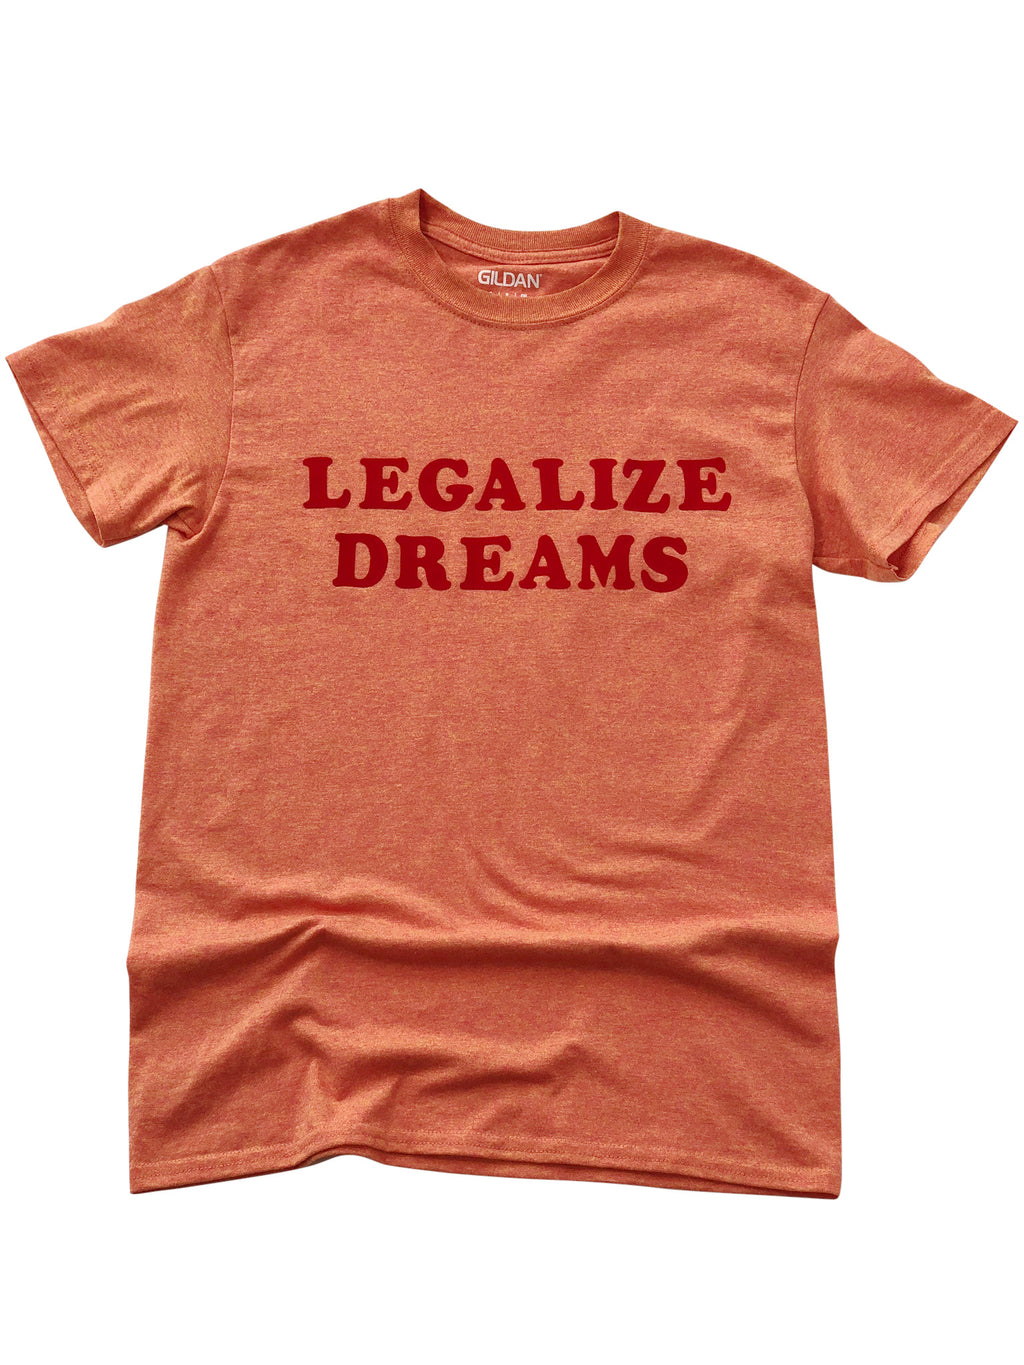 Legalize Dreams Tee